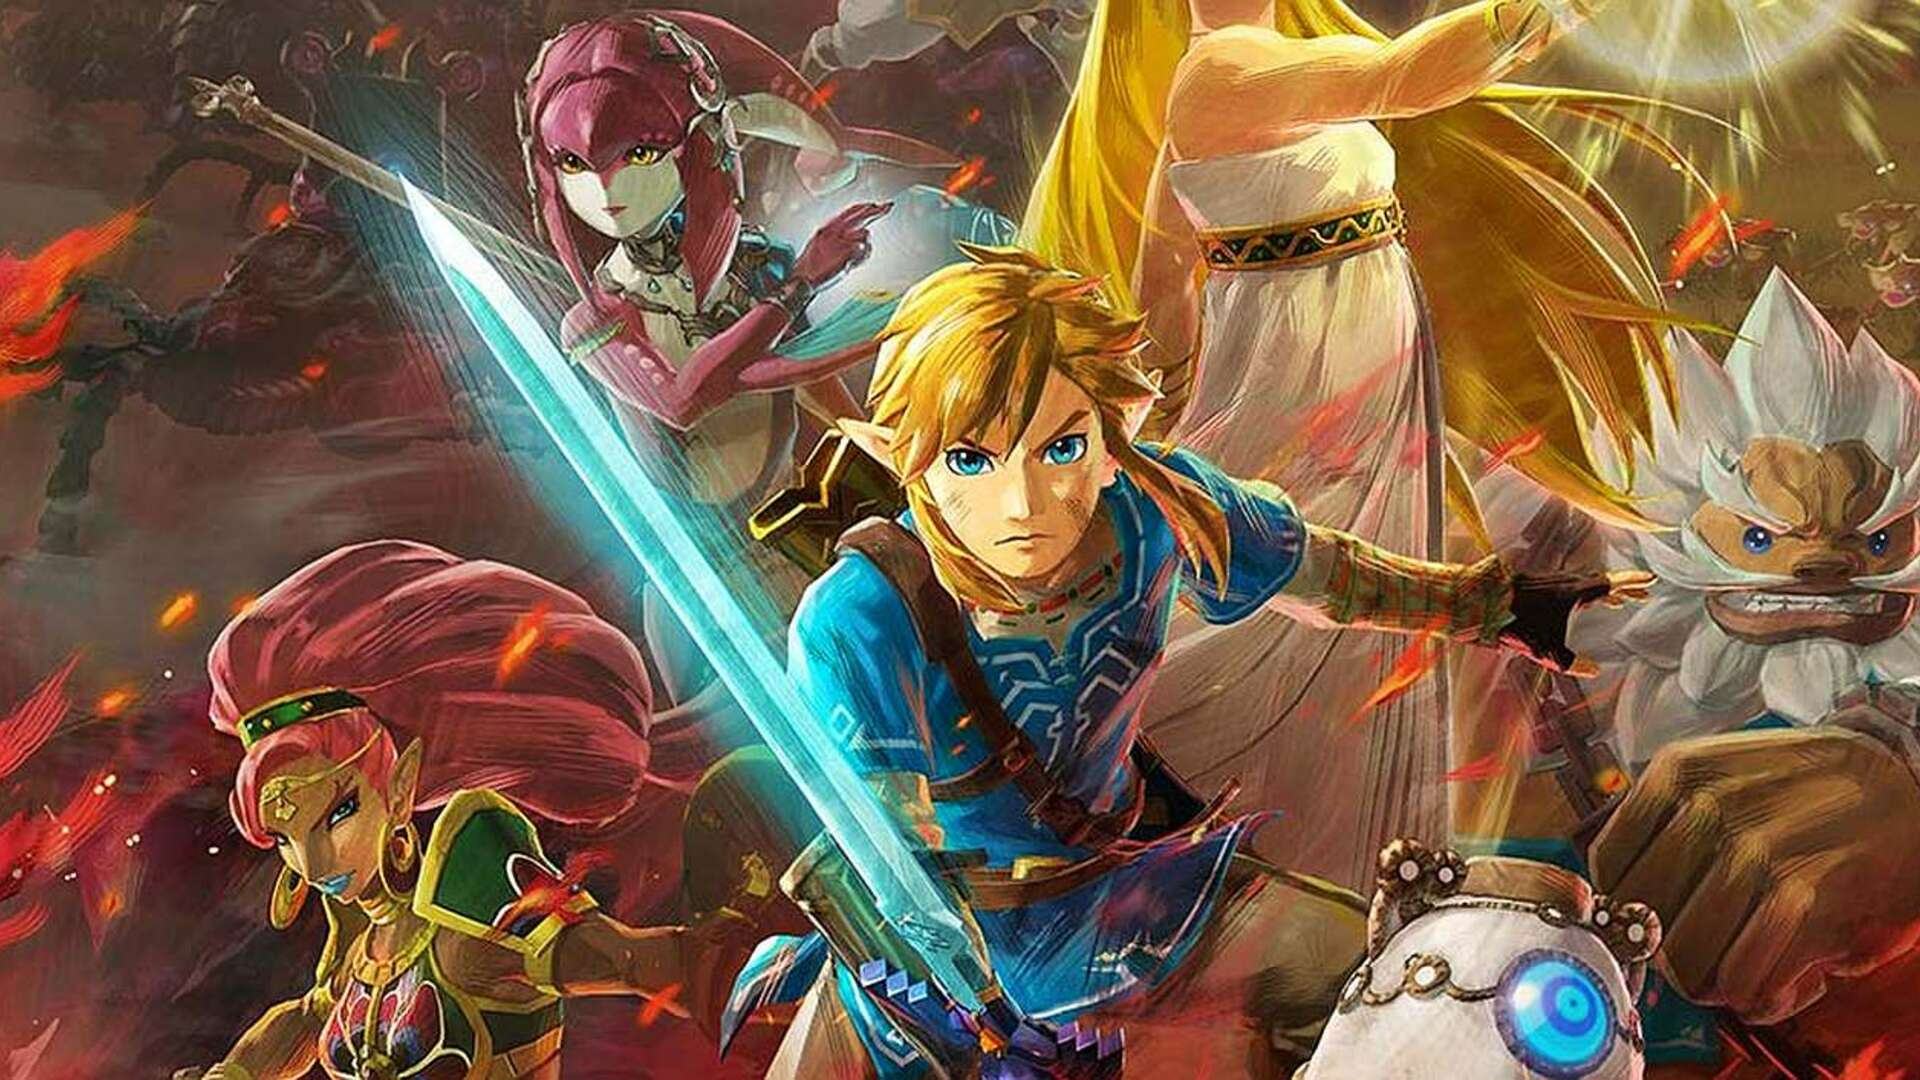 Hyrule Warriors: Age of Calamity Throws a Wrench into Breath of the Wild's Story, And I'm There For It